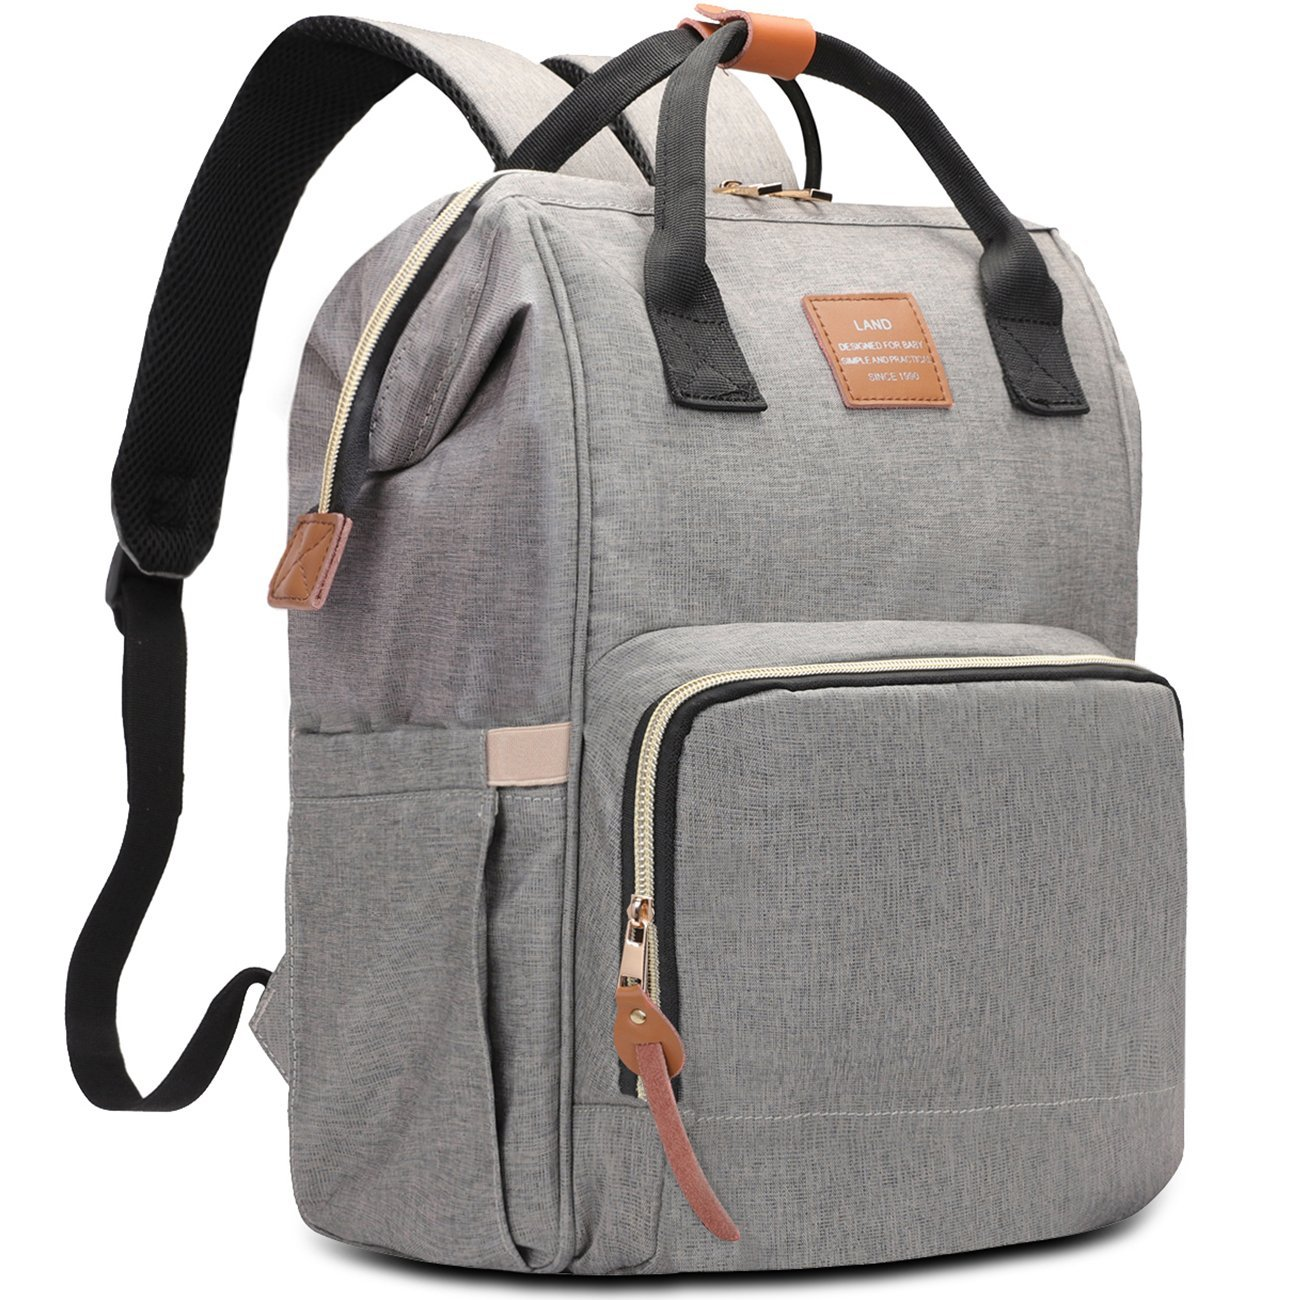 e0af35e2f1 Amazon.com   HaloVa Diaper Bag Multi-Functional Portable Travel Backpack  Nappy Bags for Baby Care